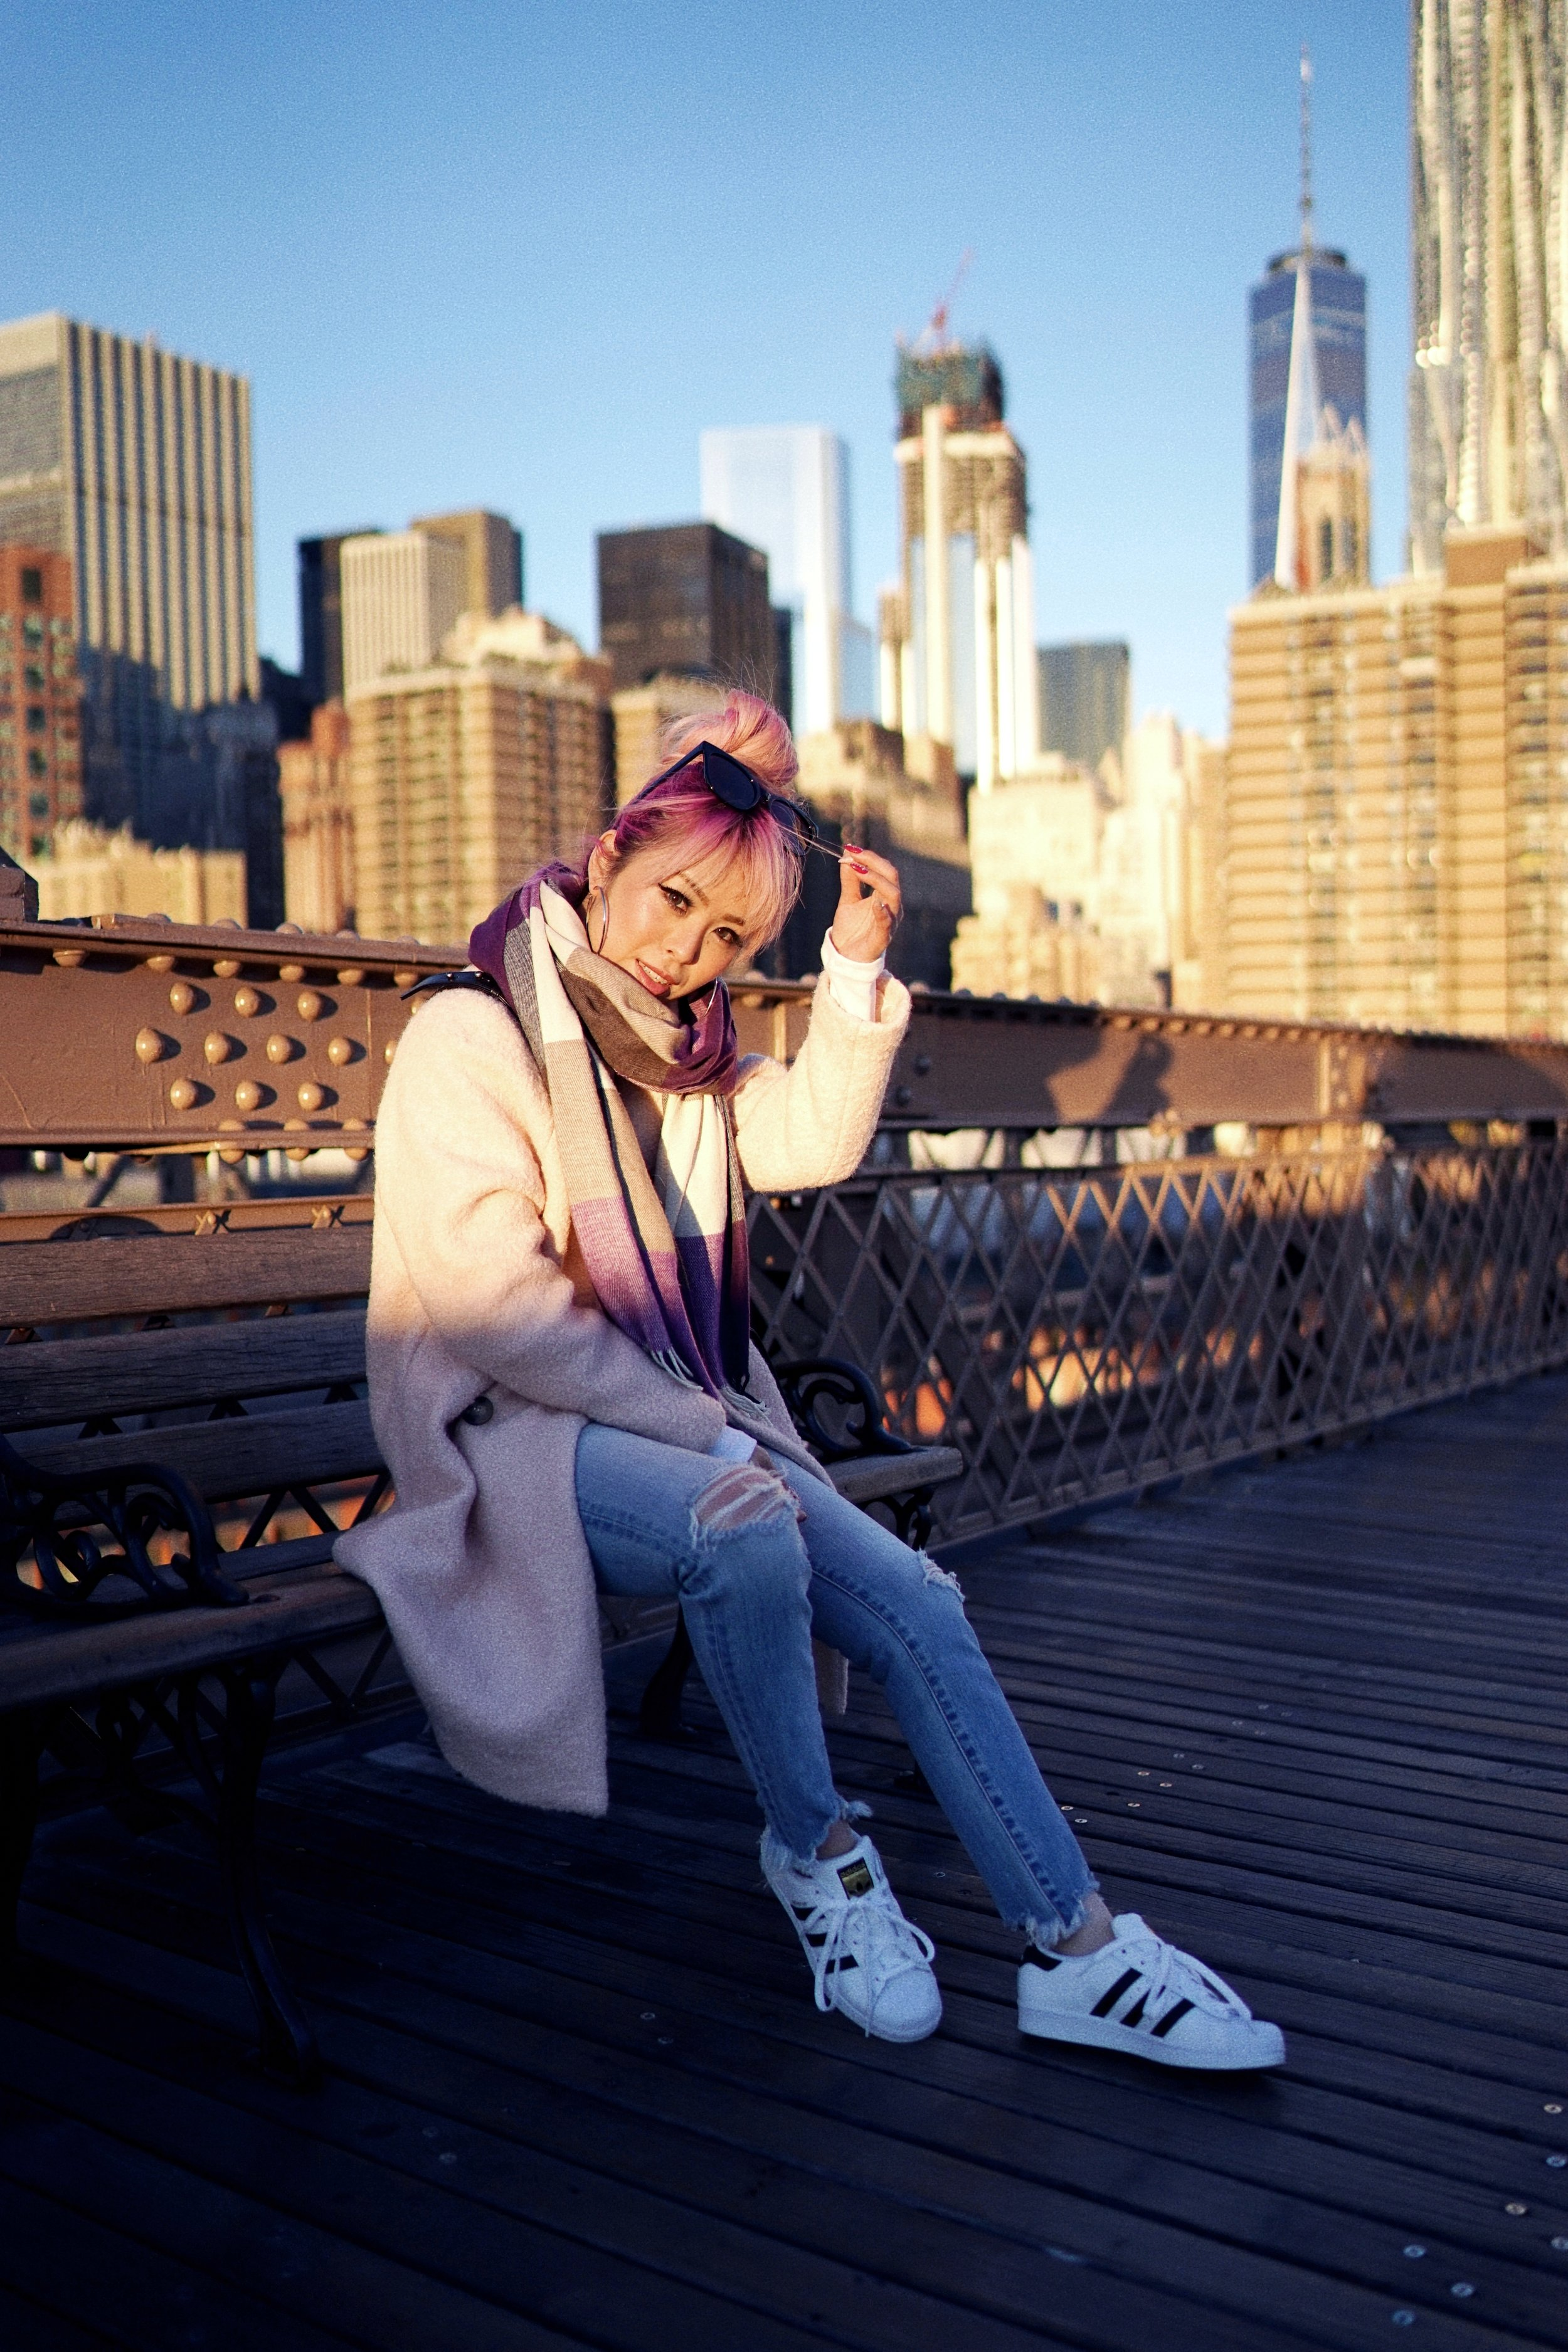 GAP Scarf-Zara pink coat-MOUSSY- frayed hem jeans- CHANEL Lambskin Quilted Medium Boy Flap Black-Adidas Superstar Shoes-Urban Outfitters Sunglasses-Aika's Love Closet-Sealtle fashion style blogger from japan-pink hair-brooklyn bridge-new york-city 20